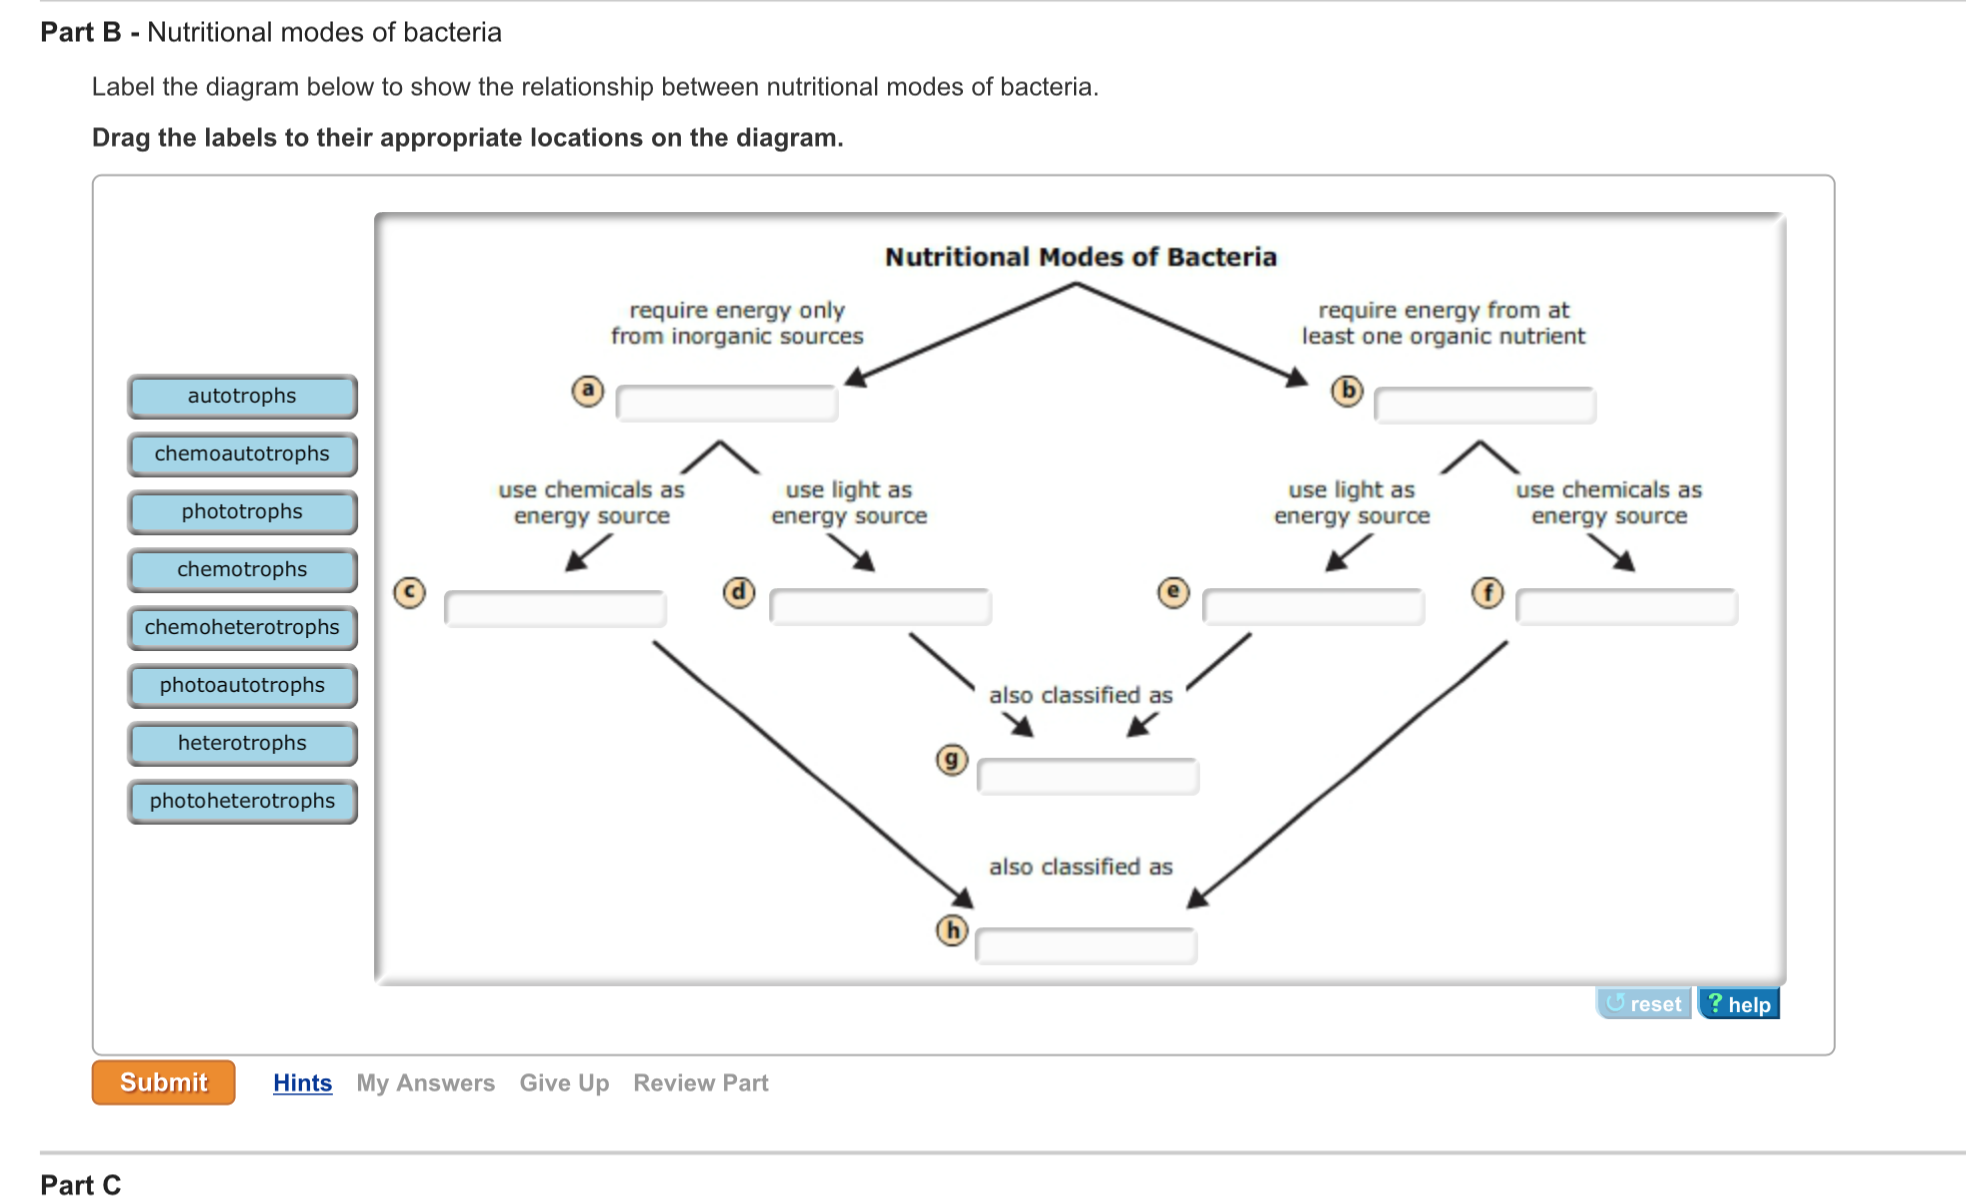 show the relationship between nutritional modes of bacteria